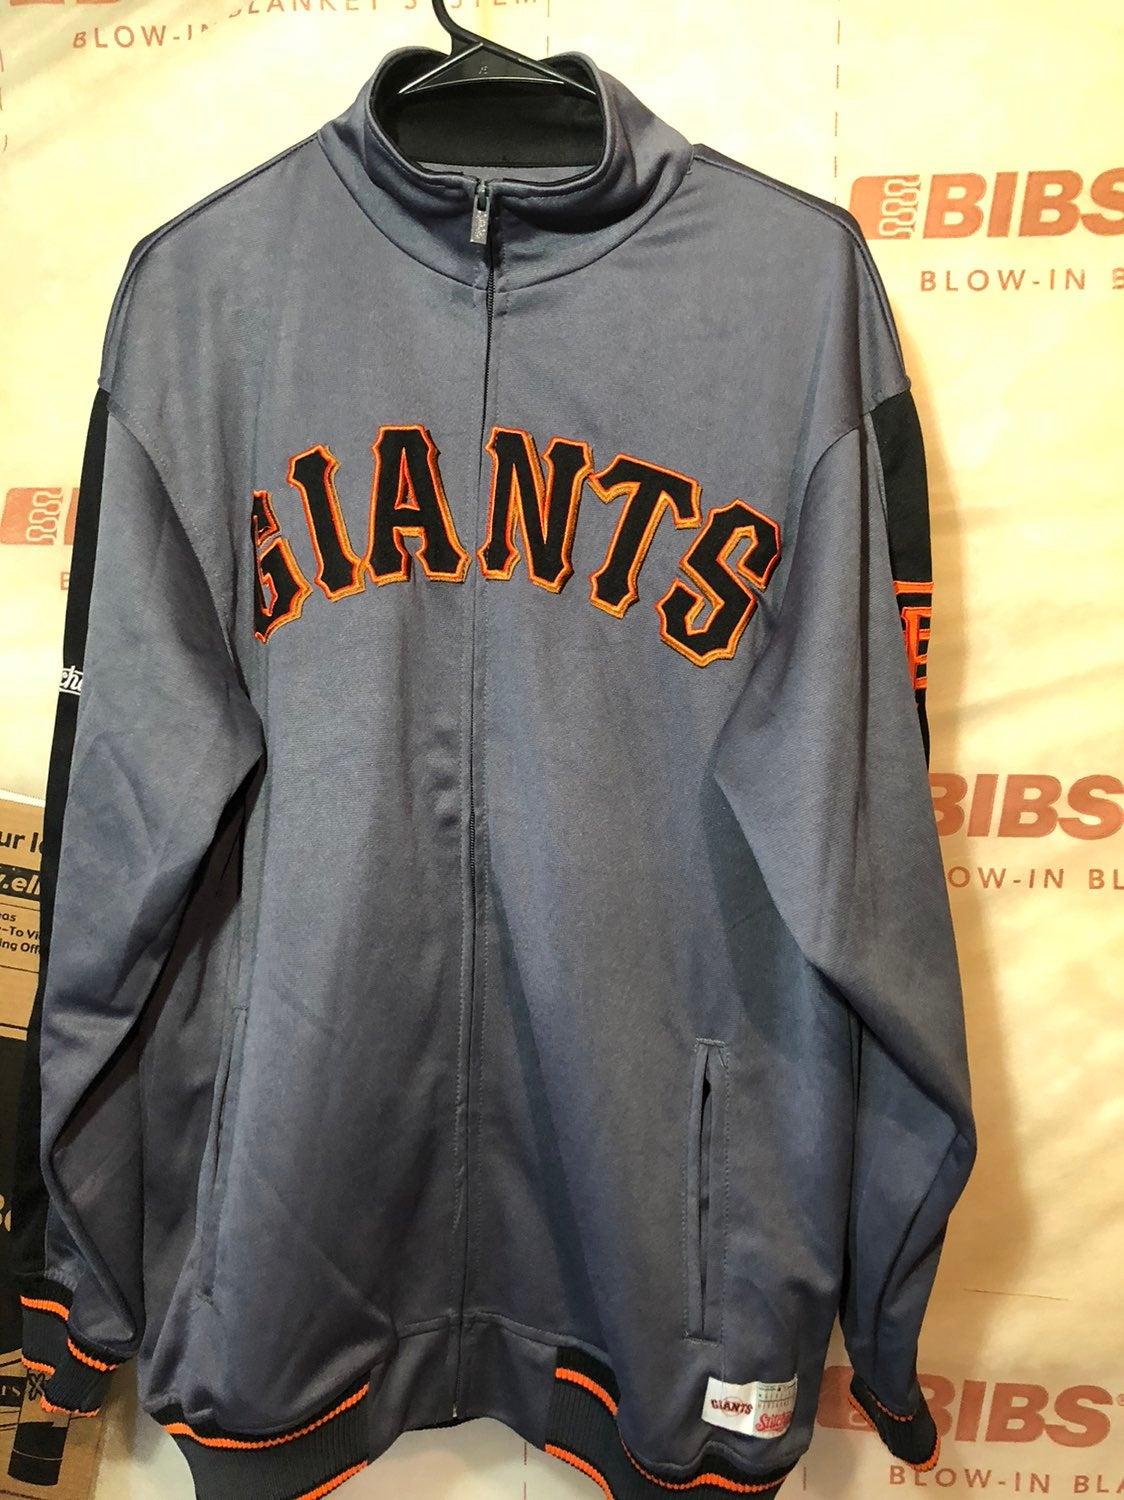 san francisco giants stitches jacket Med